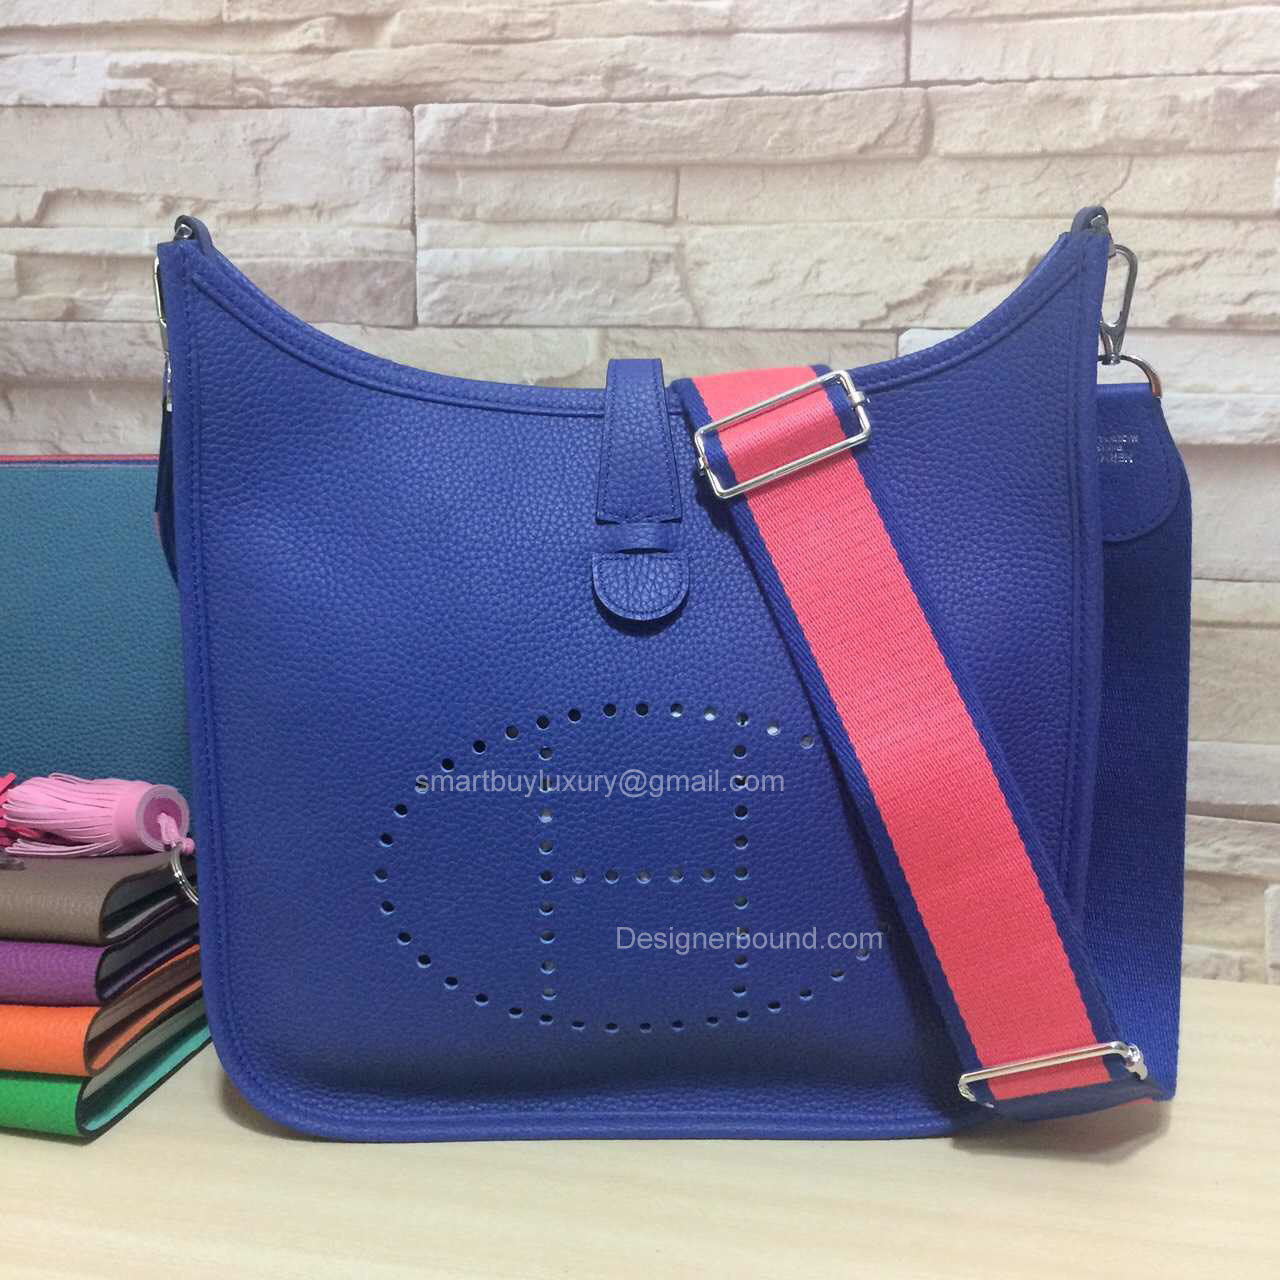 Hermes Evelyne III Deep Blue Bag PM in Togo Leather